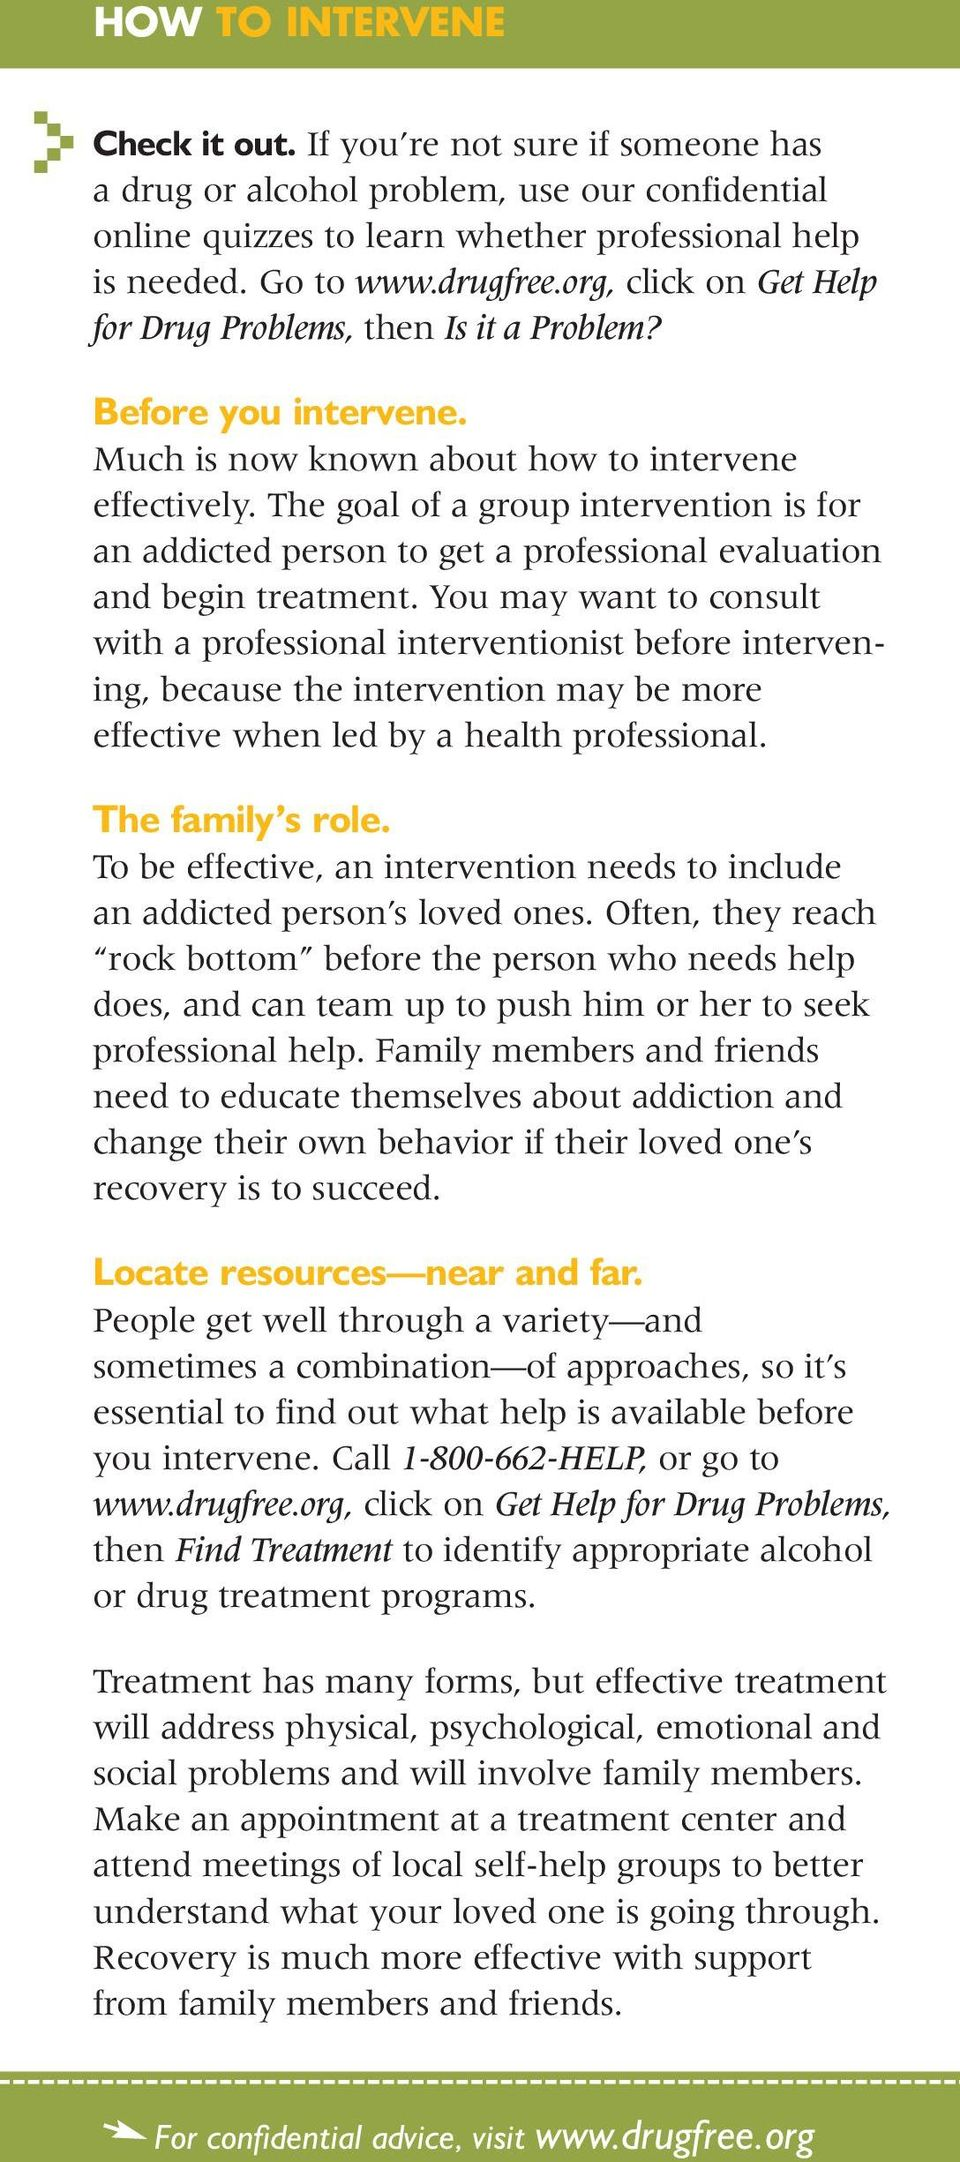 The goal of a group intervention is for an addicted person to get a professional evaluation and begin treatment.